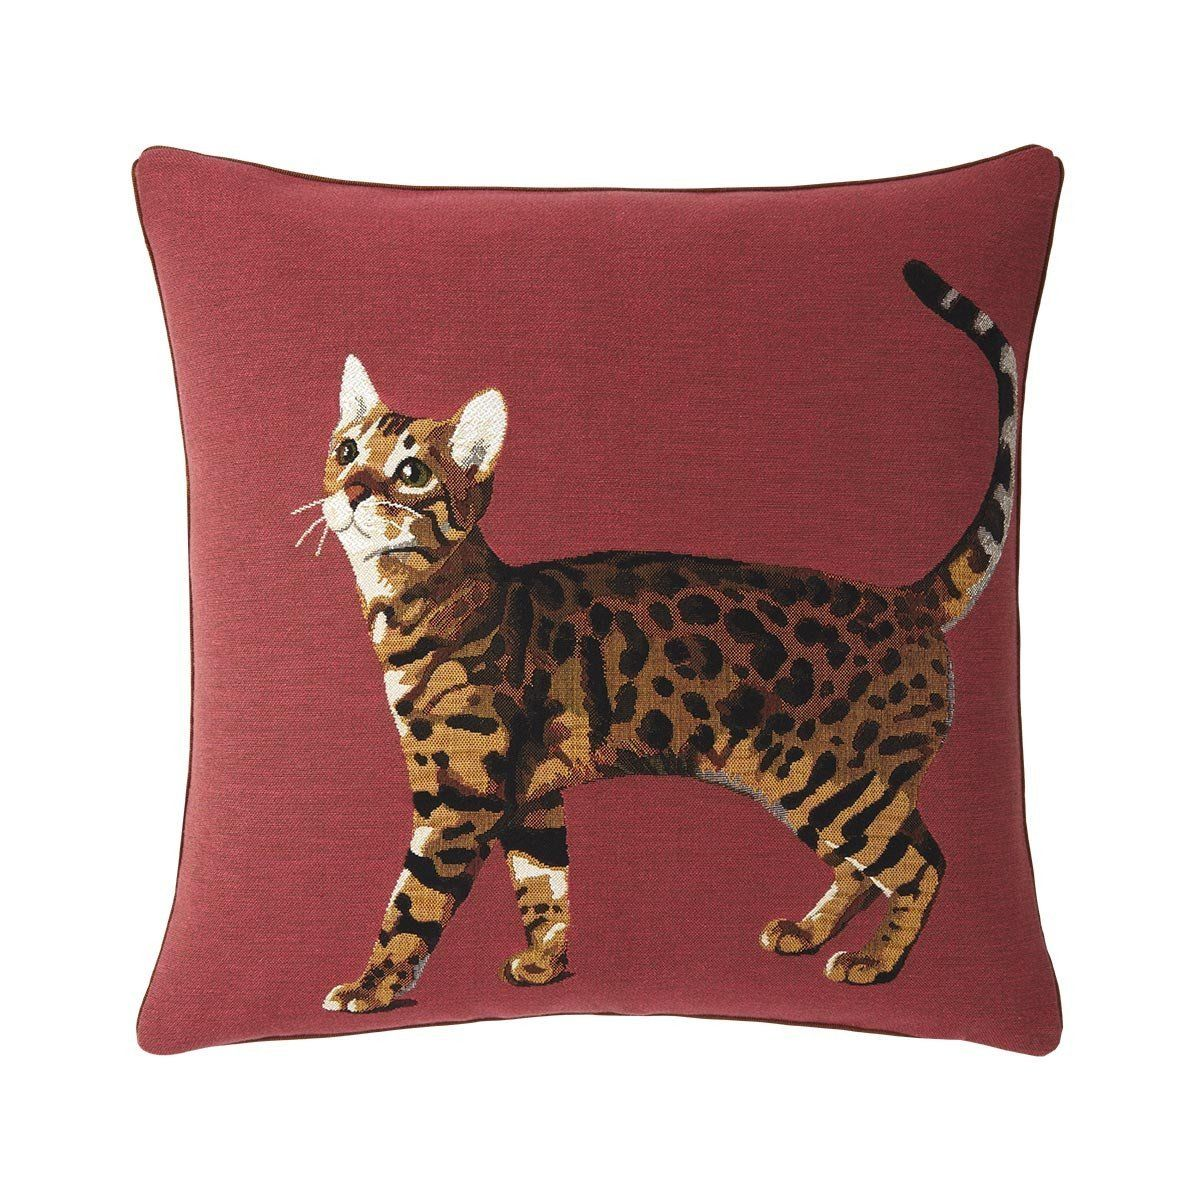 Bengal Corail Decorative Pillow by Iosis